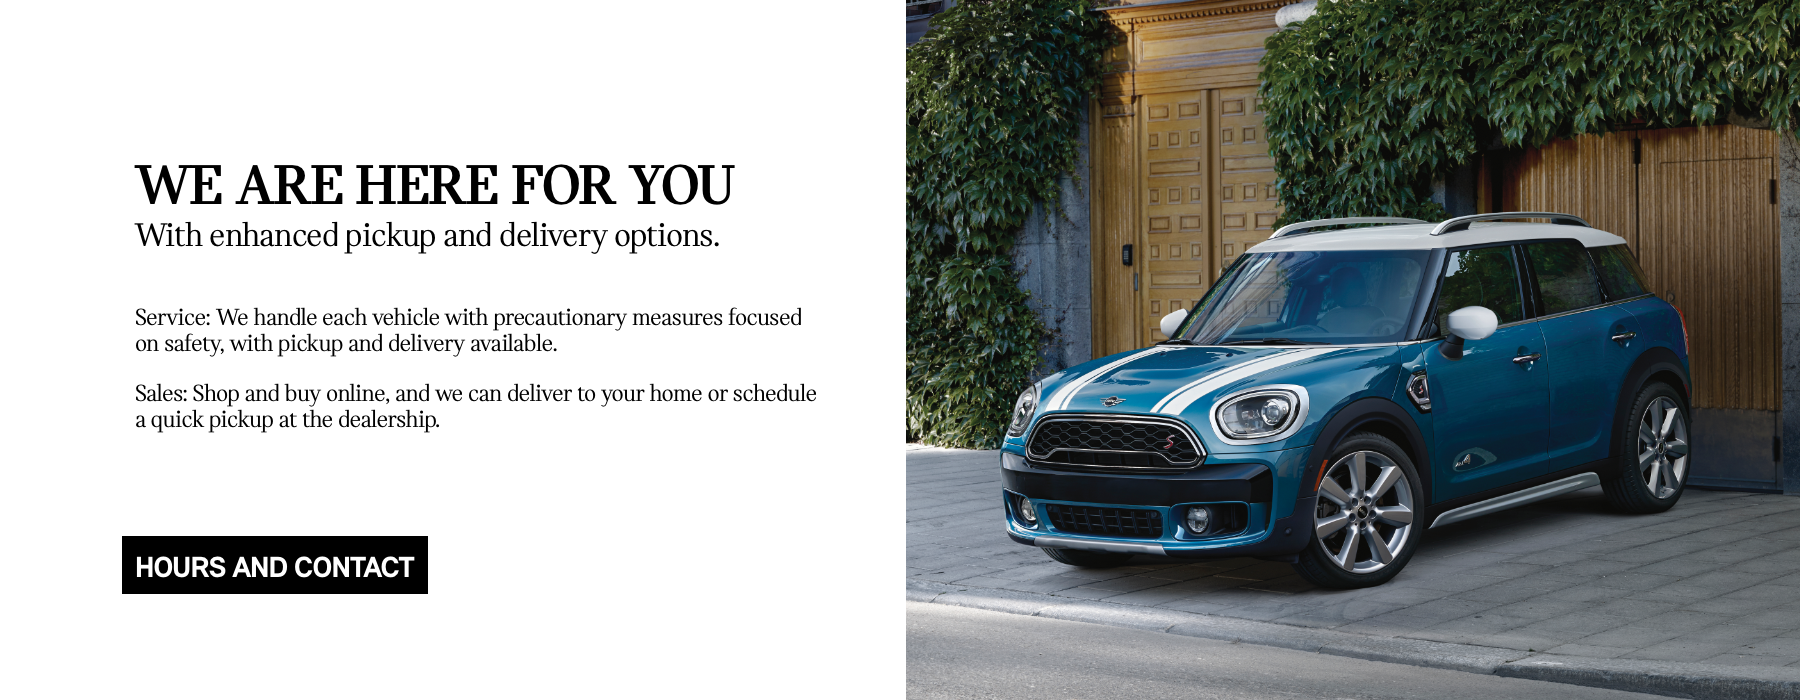 MINI Service and Sales Revised